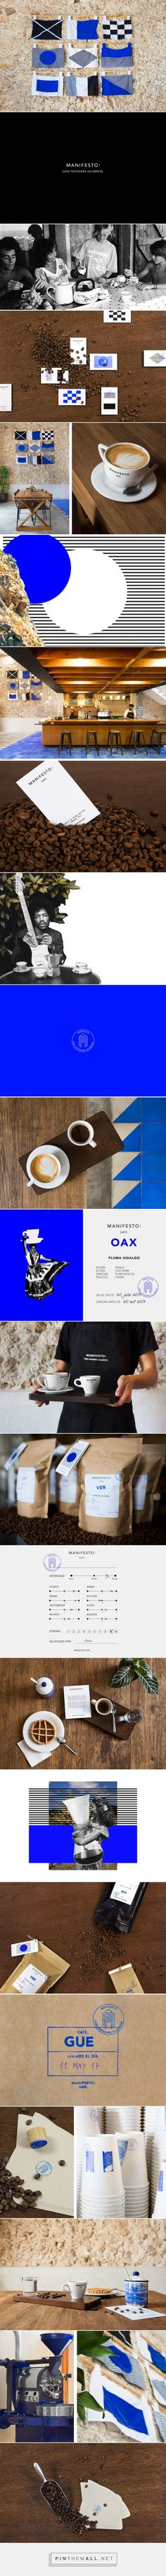 Manifesto Roasting House Branding by Bienal Comunicación | Fivestar Branding Agency – Design and Branding Agency & Curated Inspiration Gallery